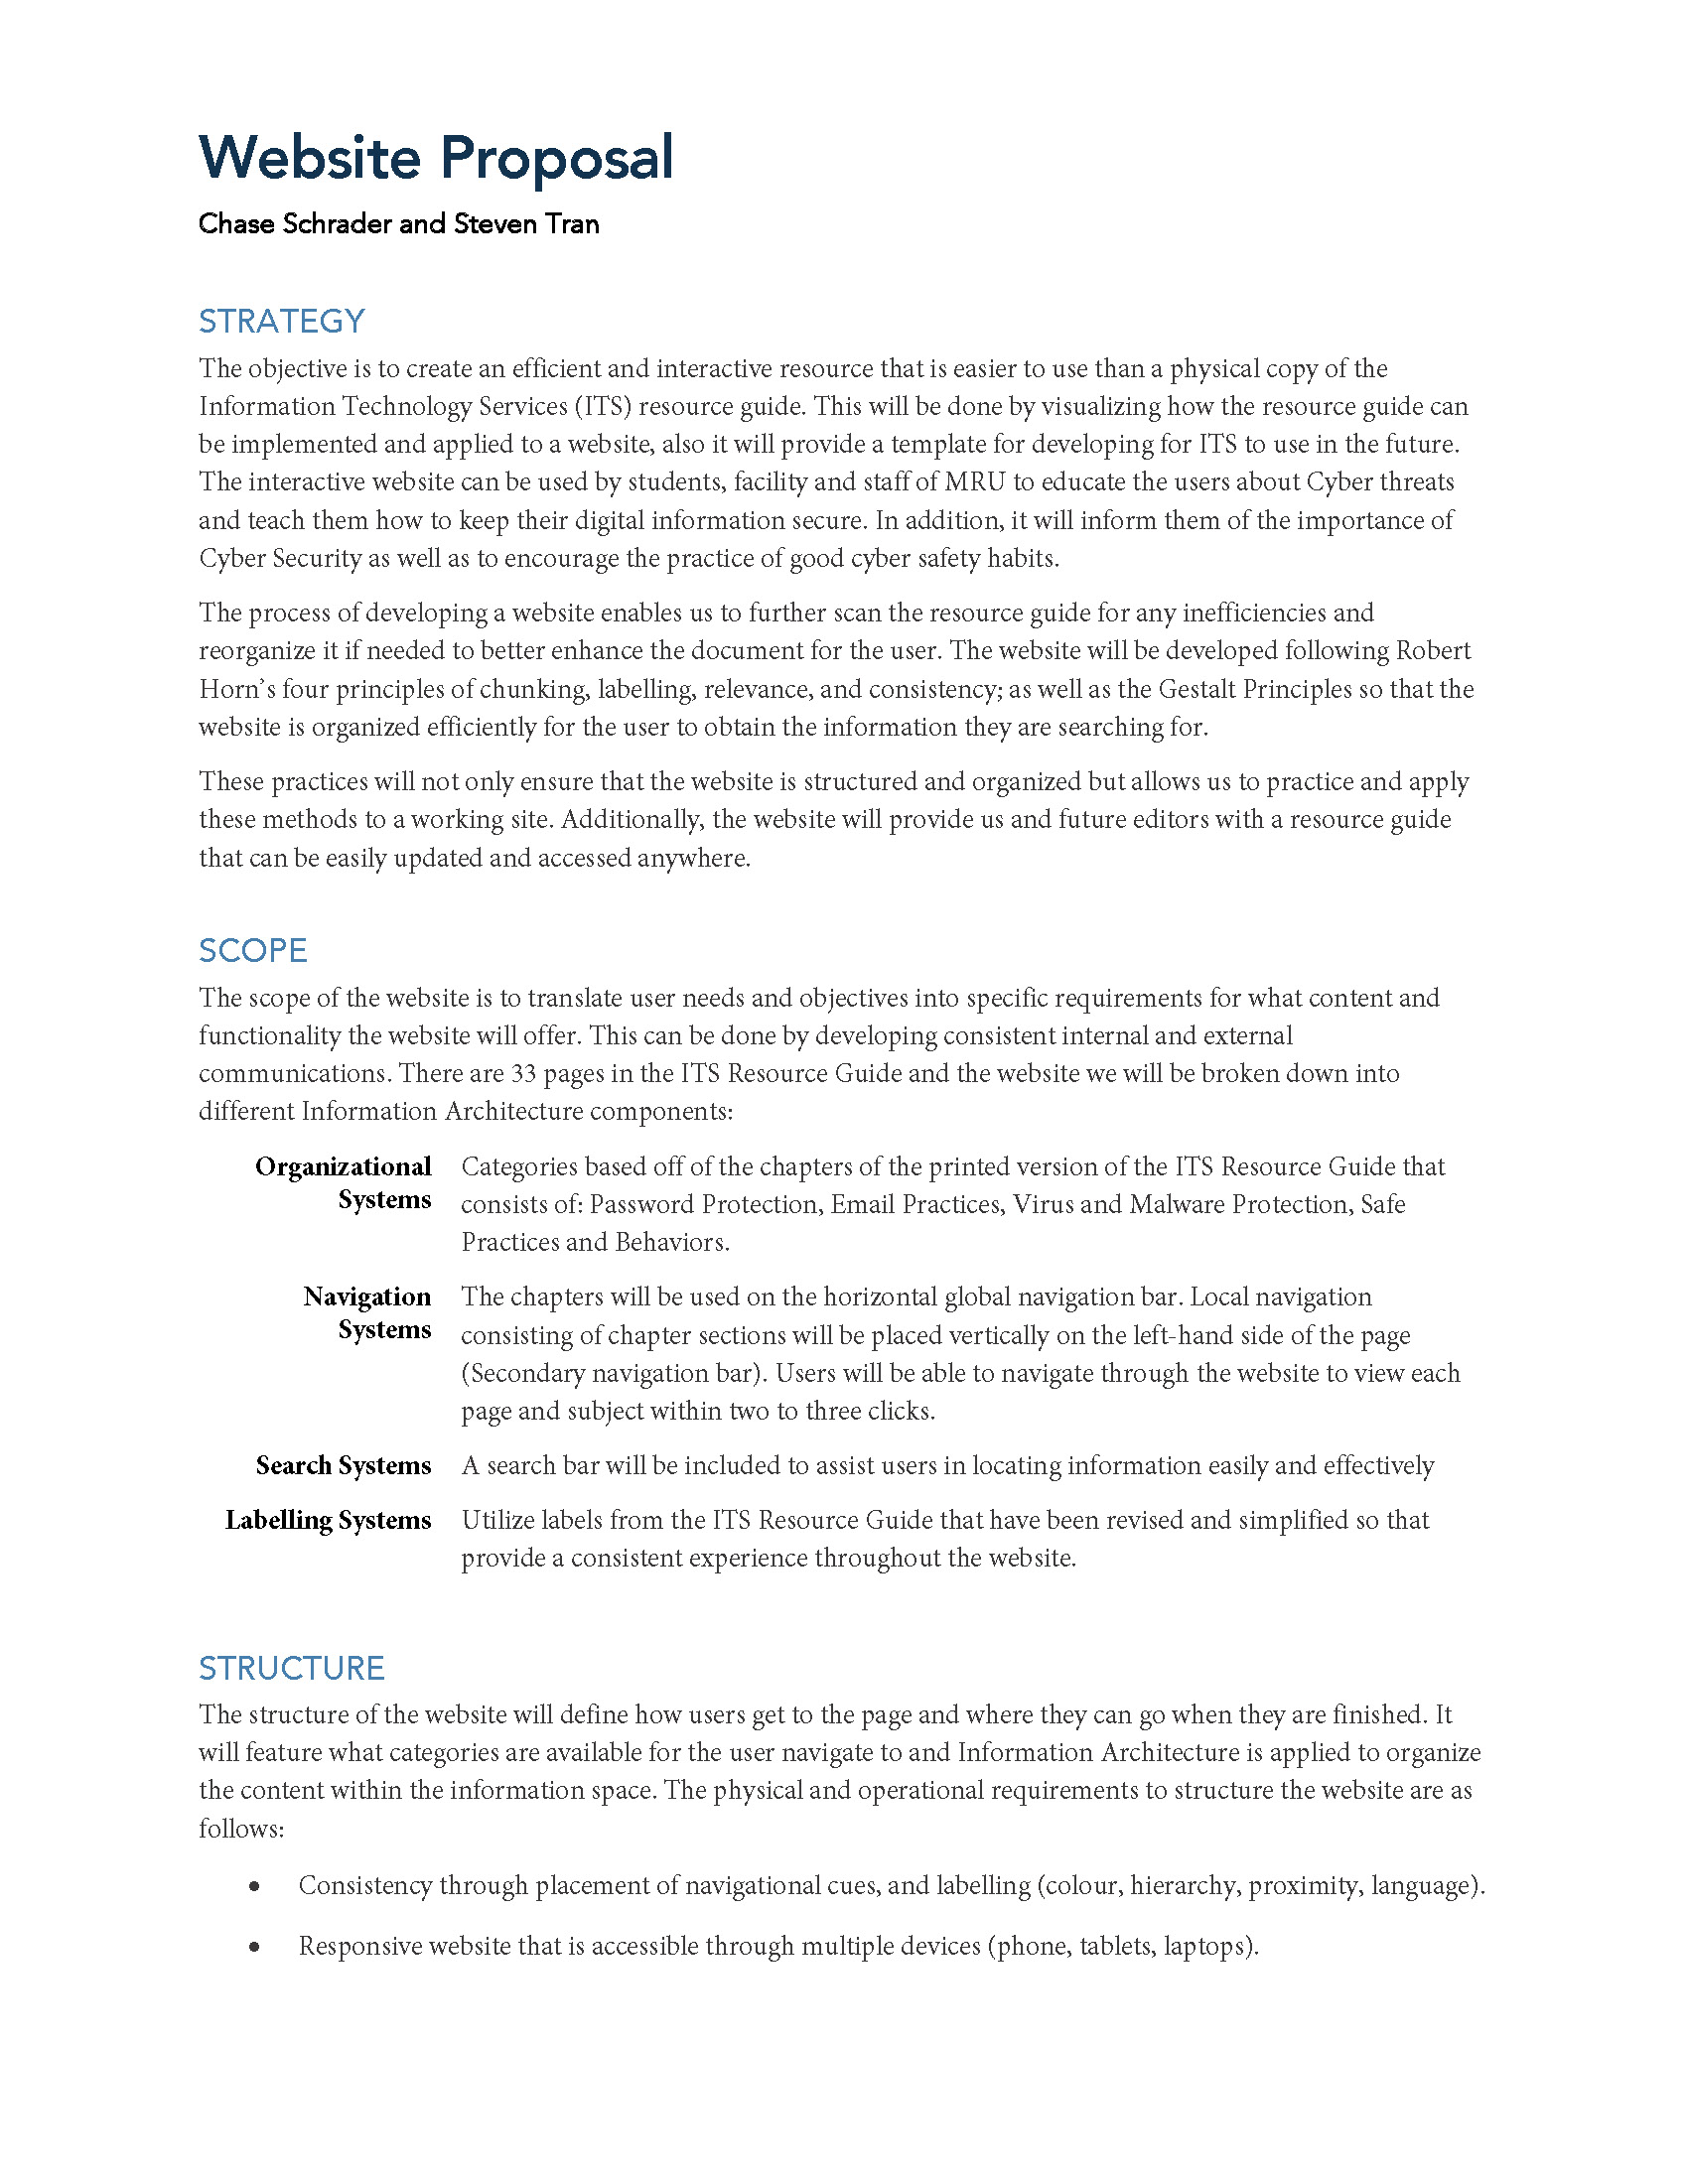 Online resource project proposal